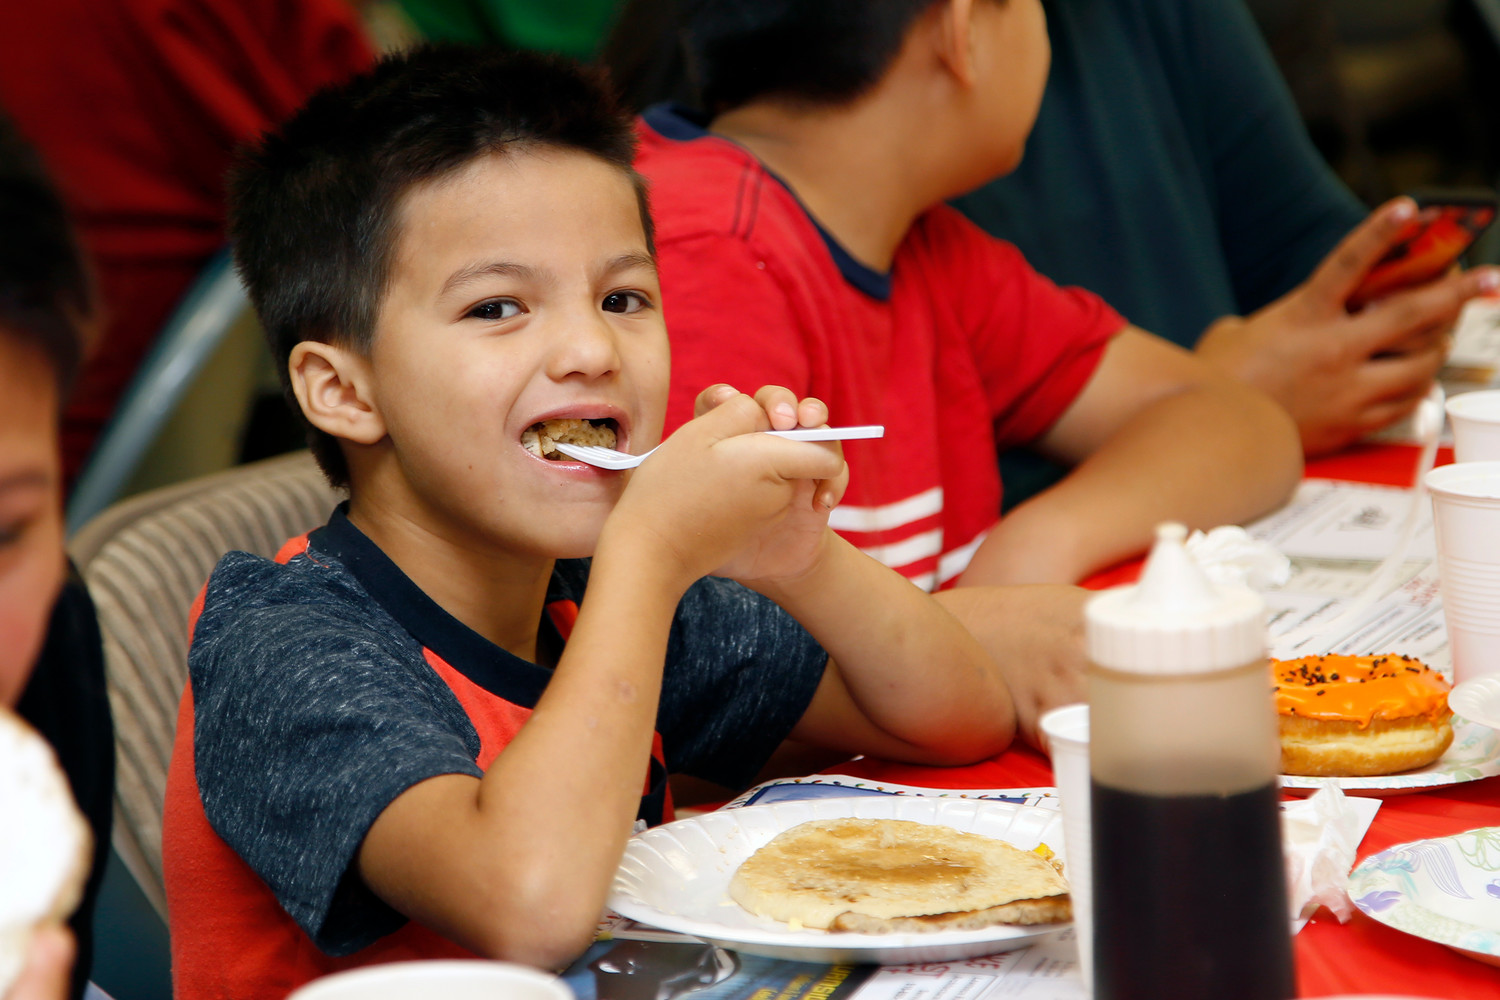 Luca Duran, 7, might have taken a bigger bite of his pancake than he expected.